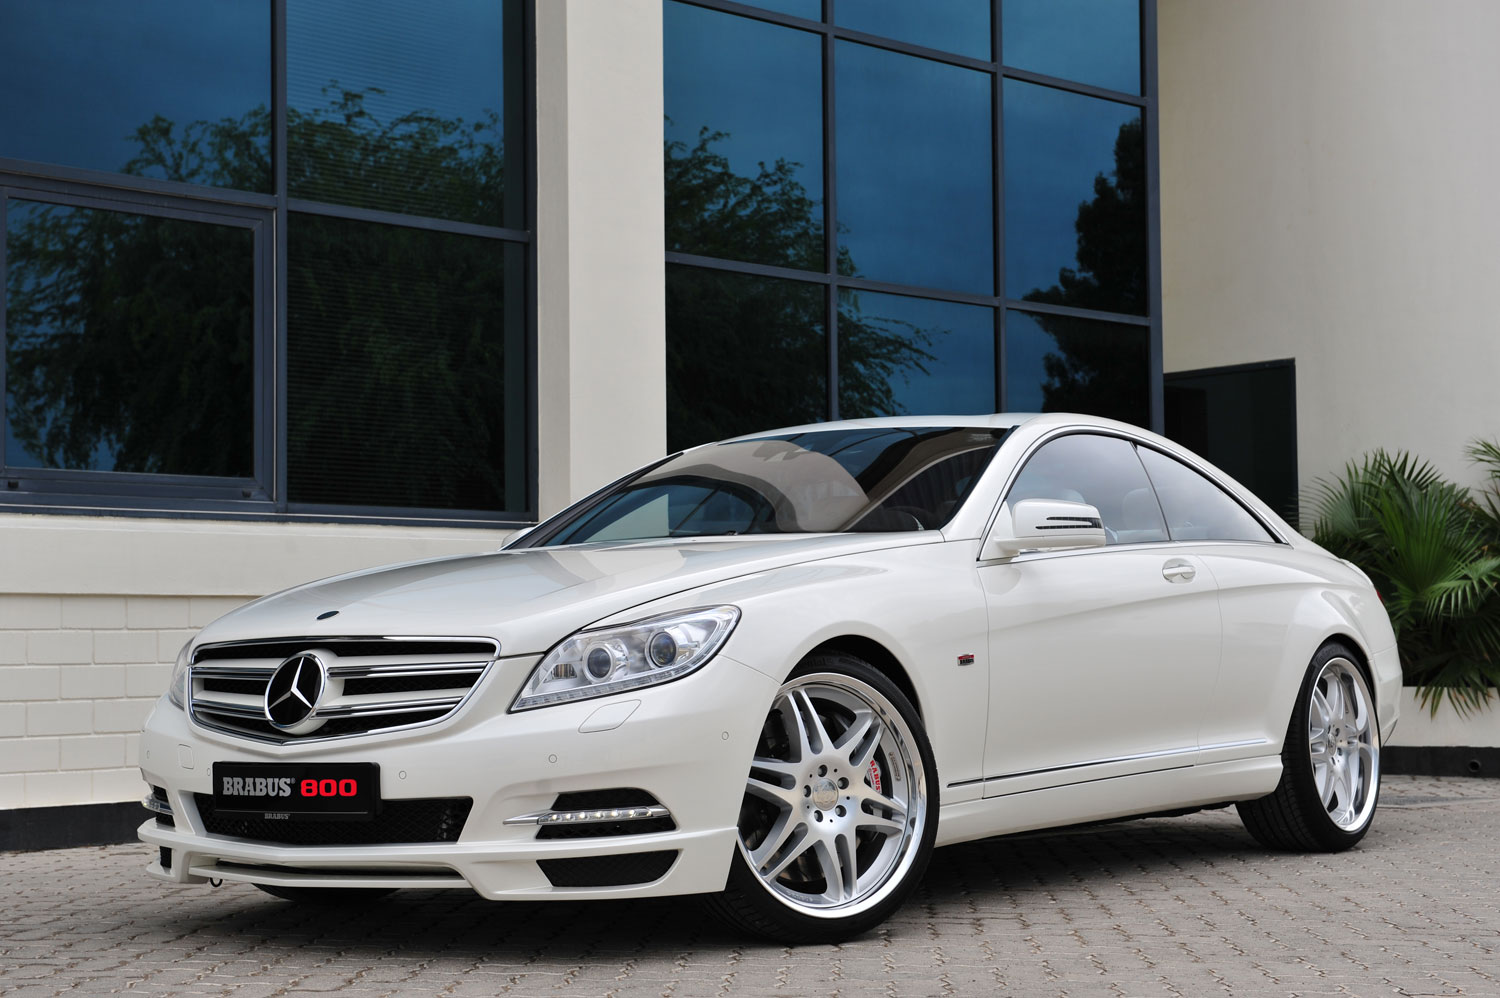 Brabus Builds 800-HP Mercedes-Benz CL Coupe